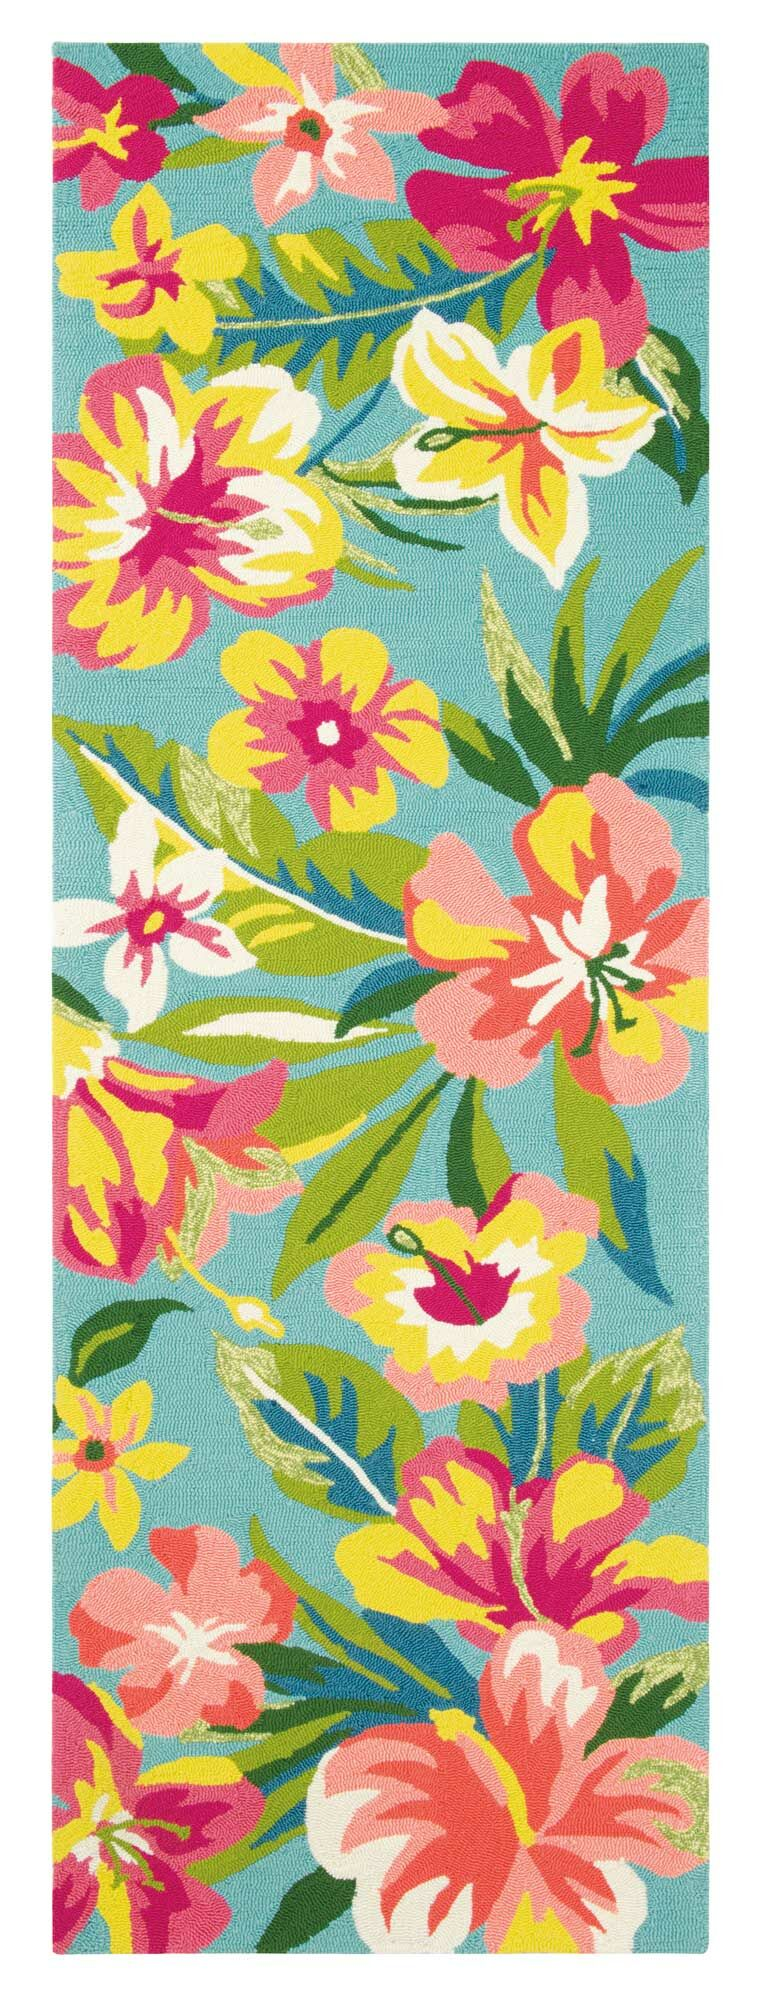 Mai Tai Hand-Hooked Green/Pink Area Rug Rug Size: Runner 2'6